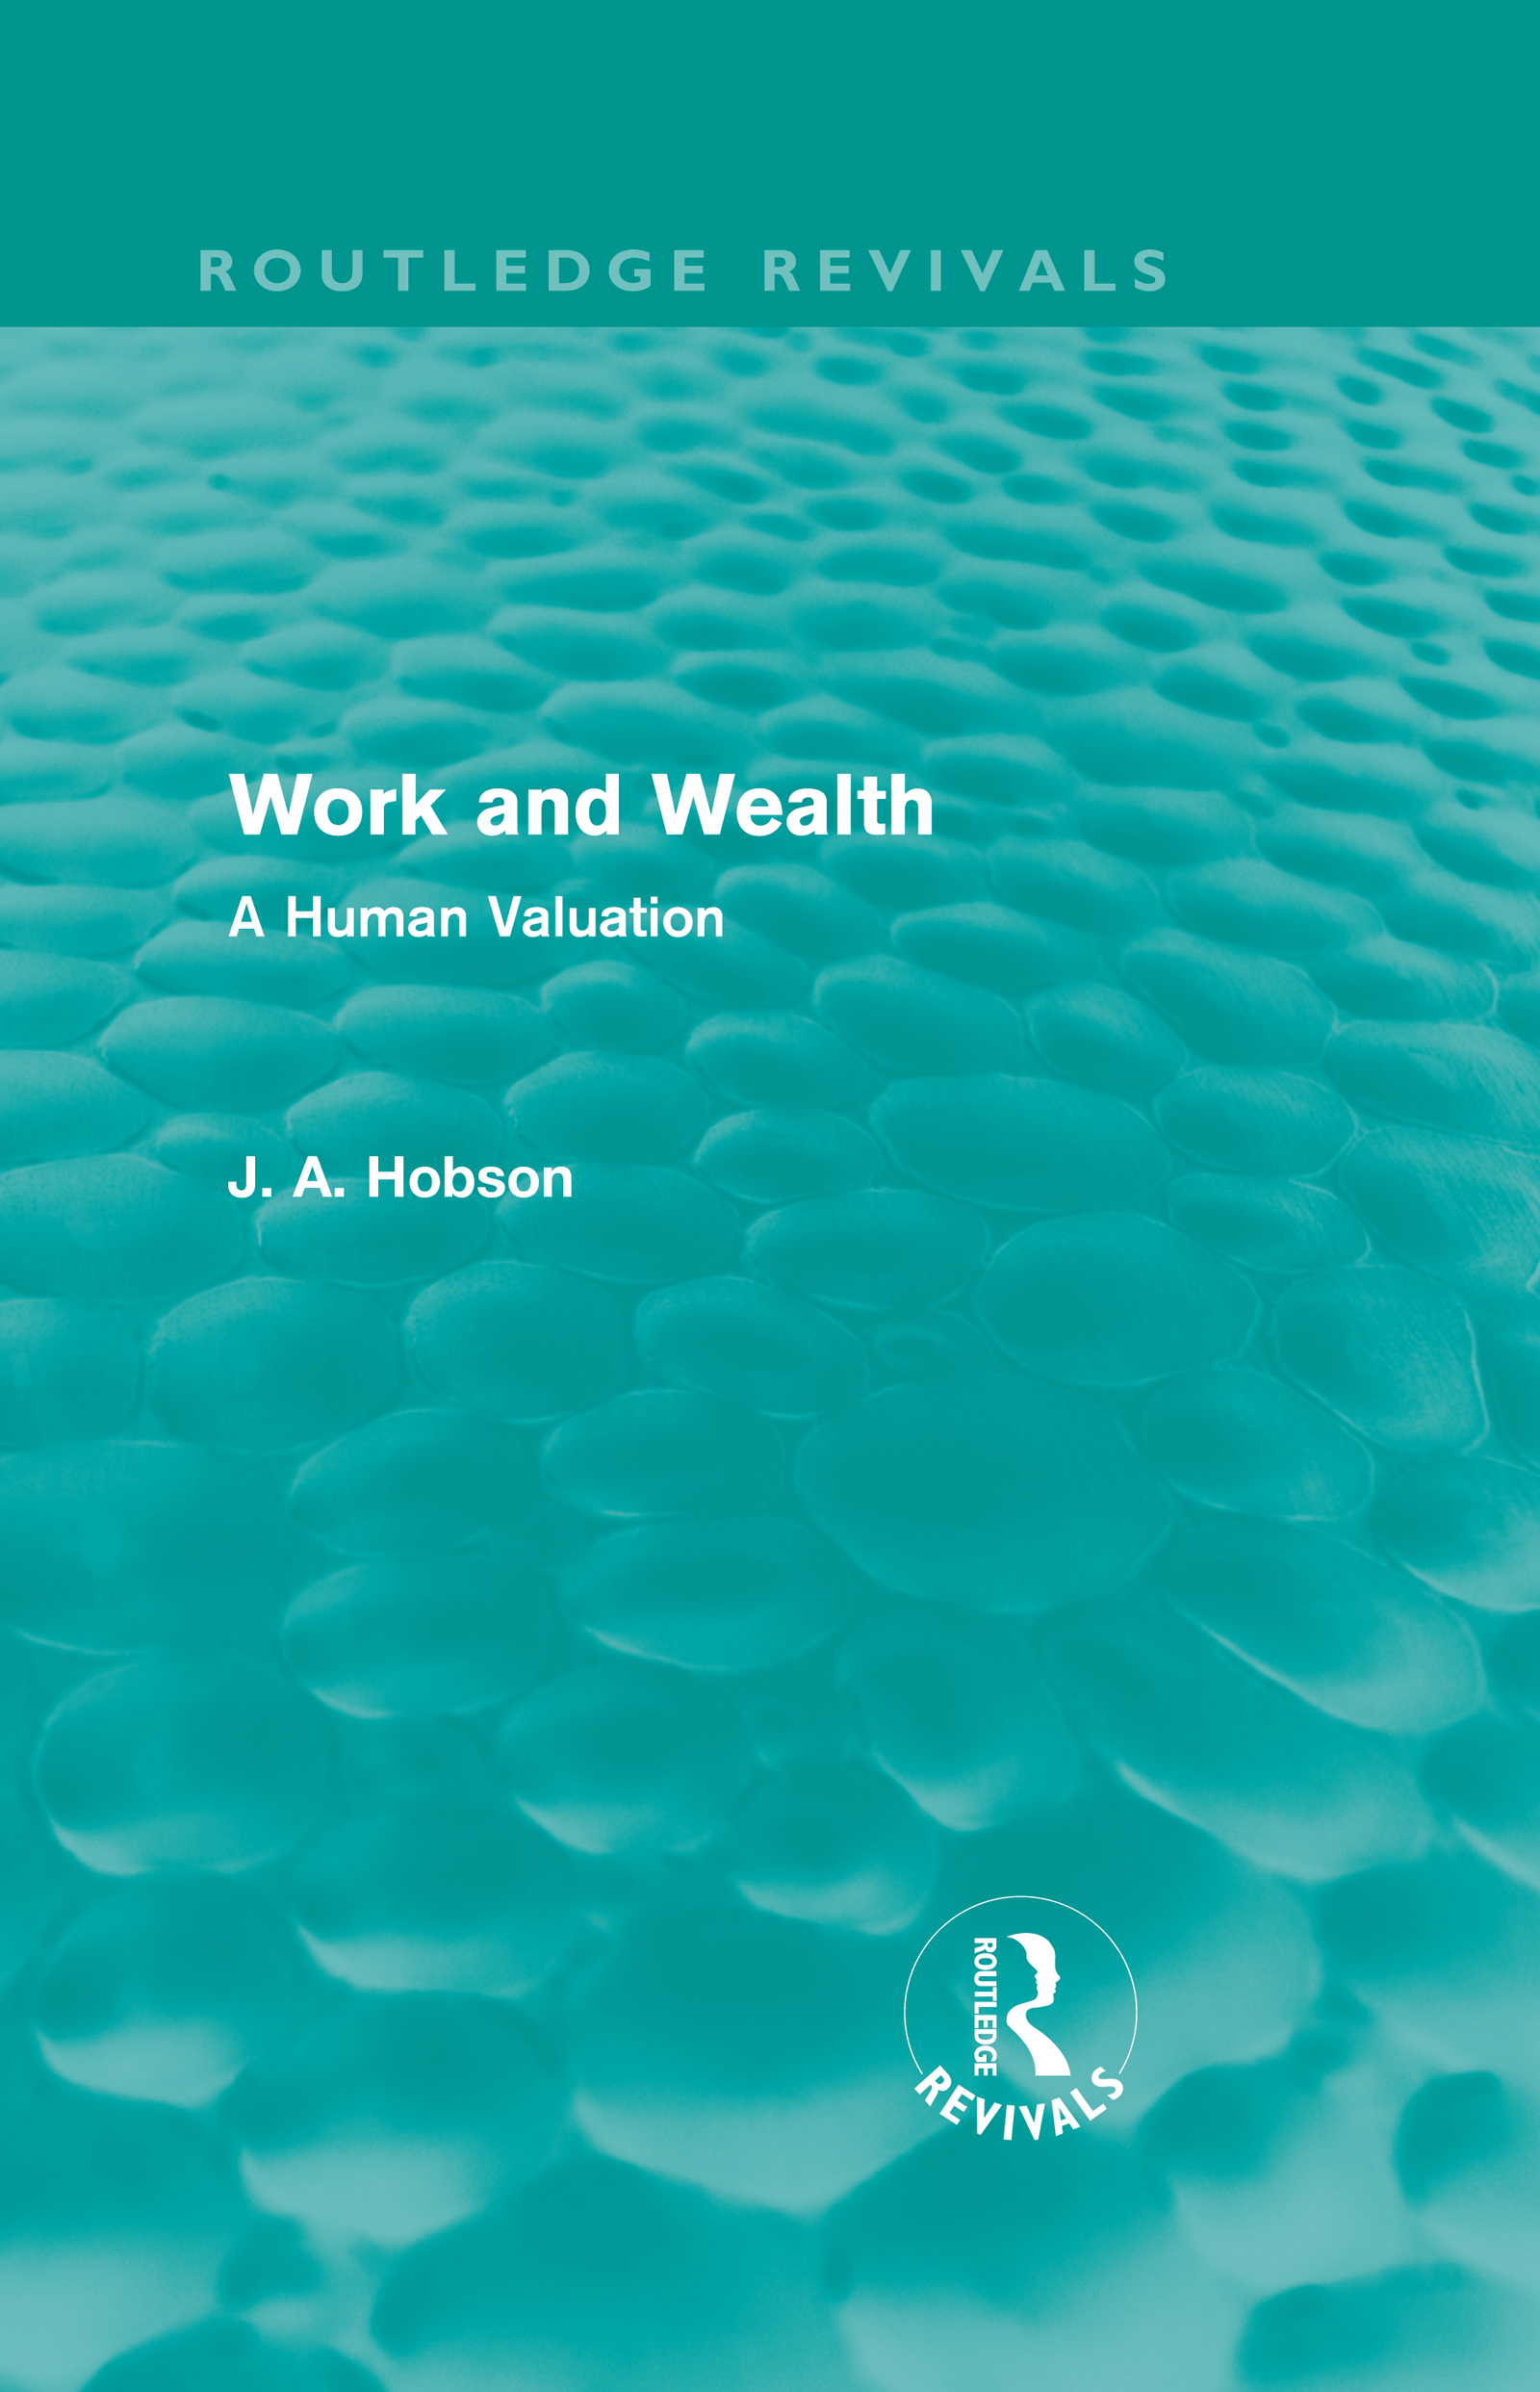 Work and Wealth (Routledge Revivals)